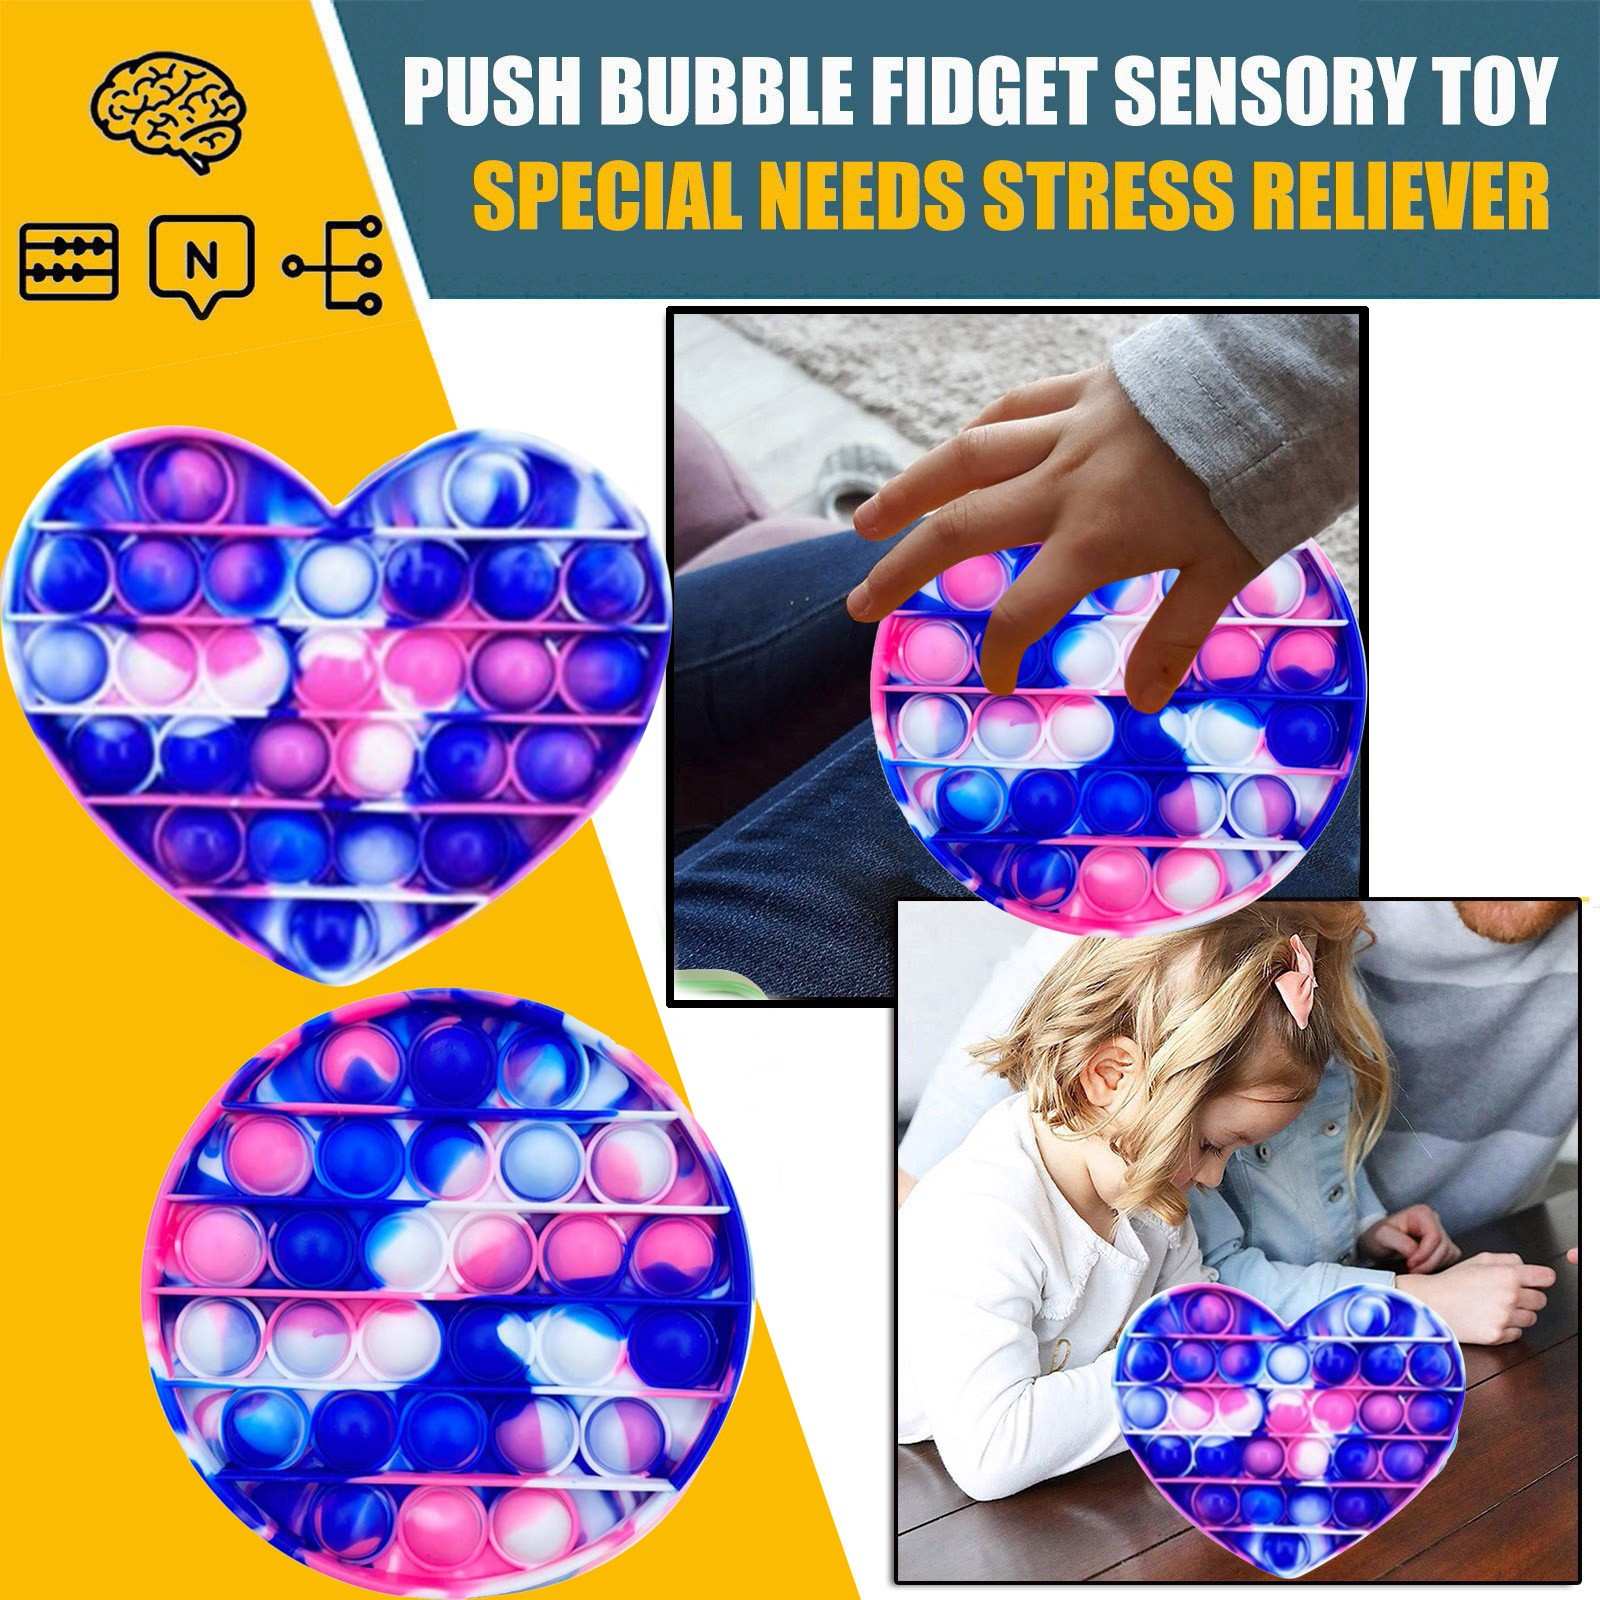 Funny Fidget Toys Simple Dimple Poppit Toy Bubble Sensory Toy For Adult Kids Stress Reliever Autism Gift ?????????? ???? Drop img5